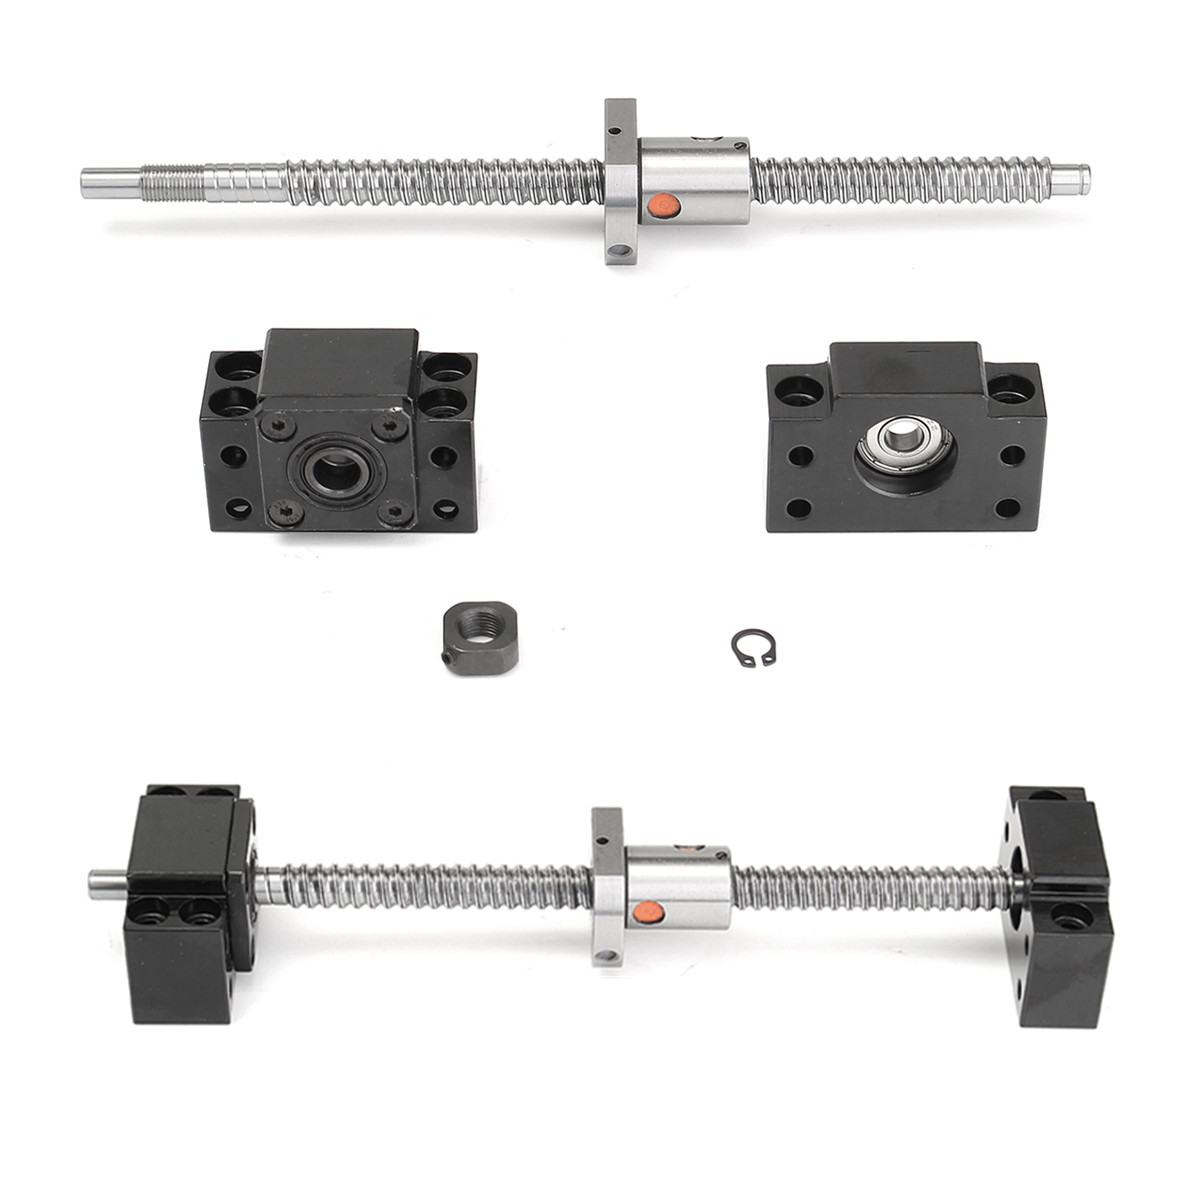 250mm Ball Screw Linear Guide End Support Kit SFU1204 with Ballnut BF/BK10 Machining Stainless Steel Ball Screw Fitting Kit250mm Ball Screw Linear Guide End Support Kit SFU1204 with Ballnut BF/BK10 Machining Stainless Steel Ball Screw Fitting Kit